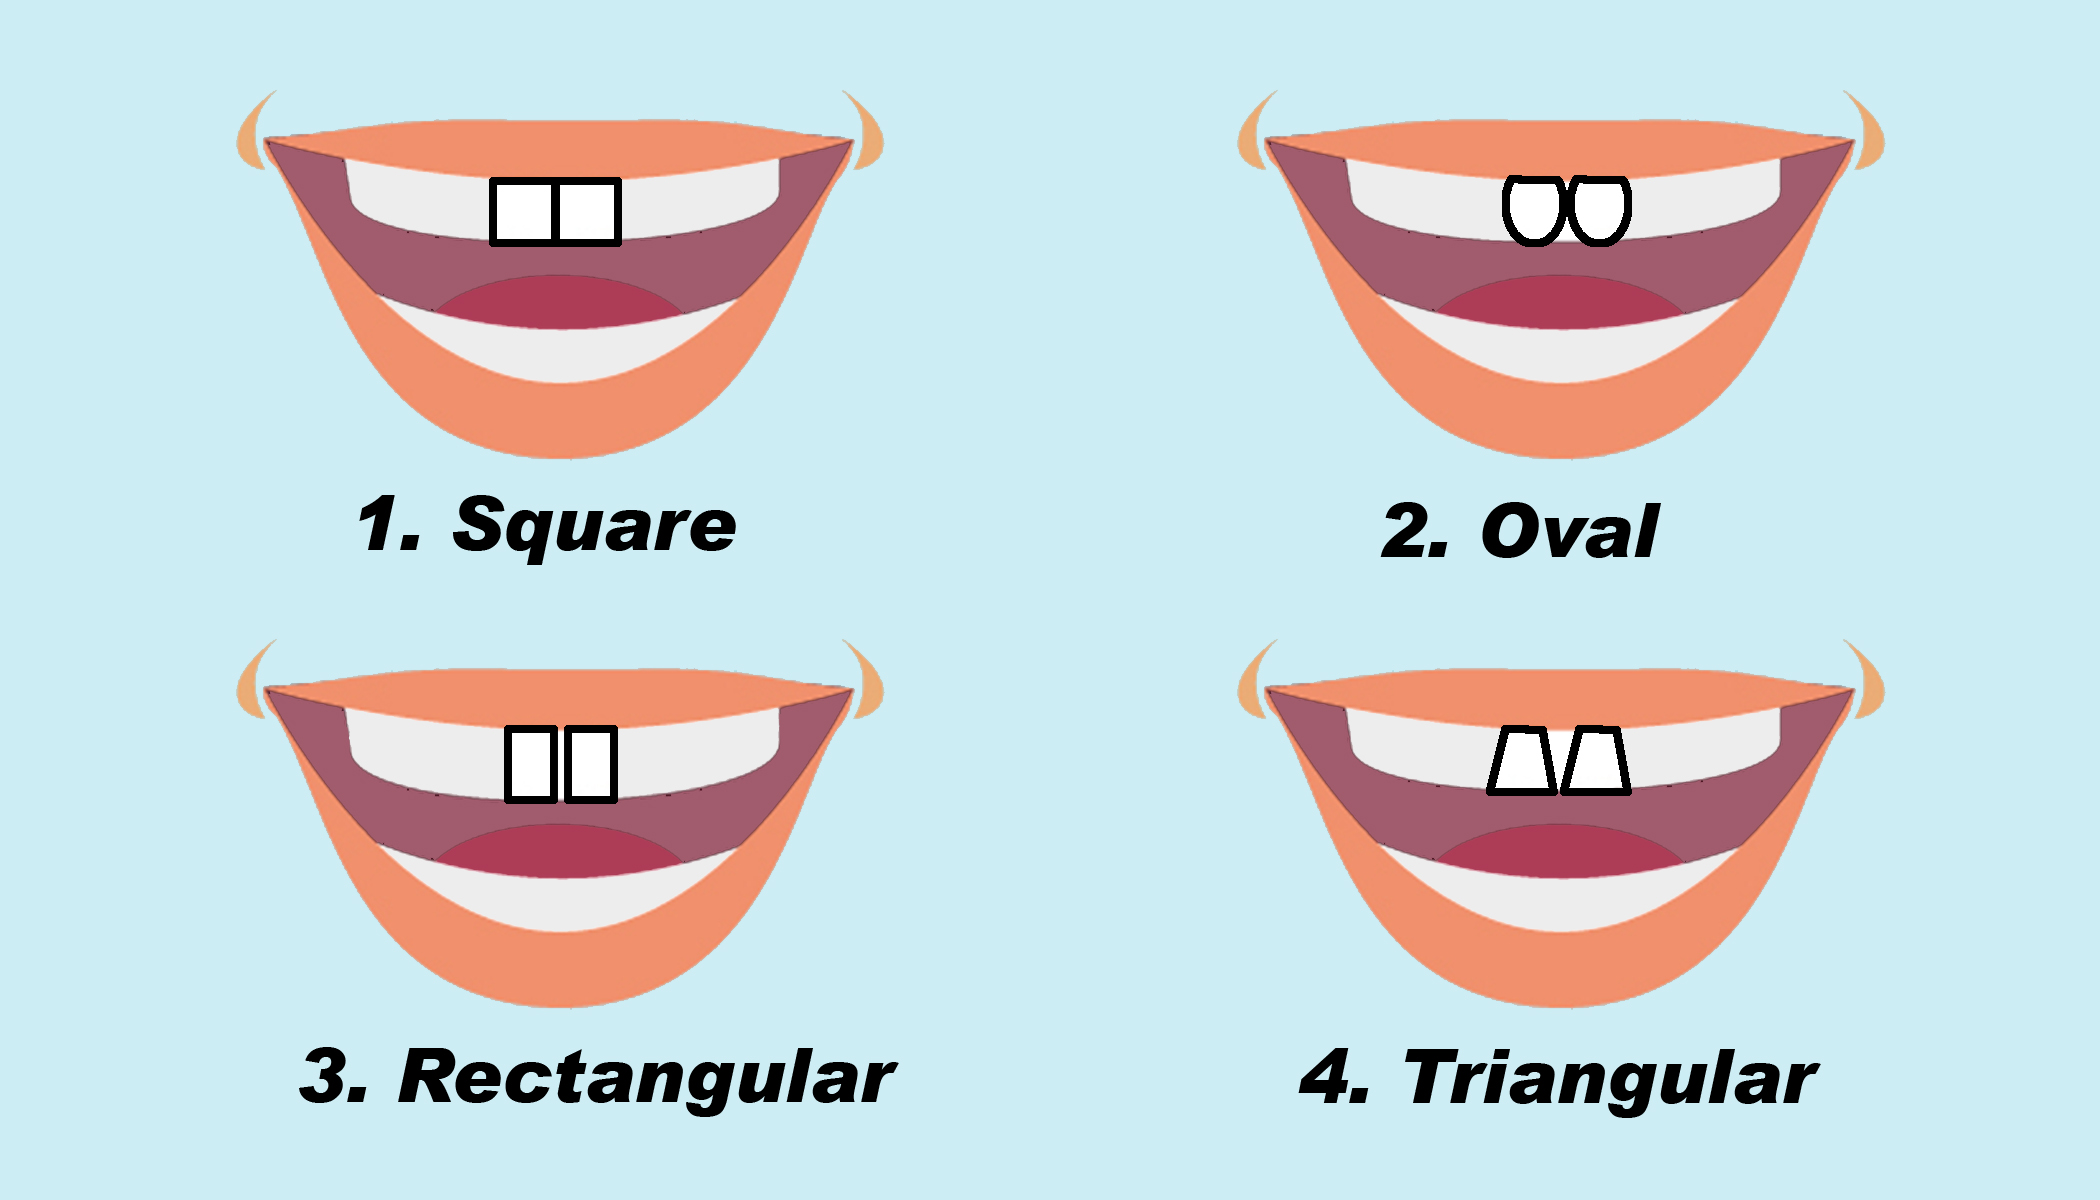 The Shape of Your Two Front Teeth Can Tell About Your Personality–Rectangular Teeth Predict Leadership